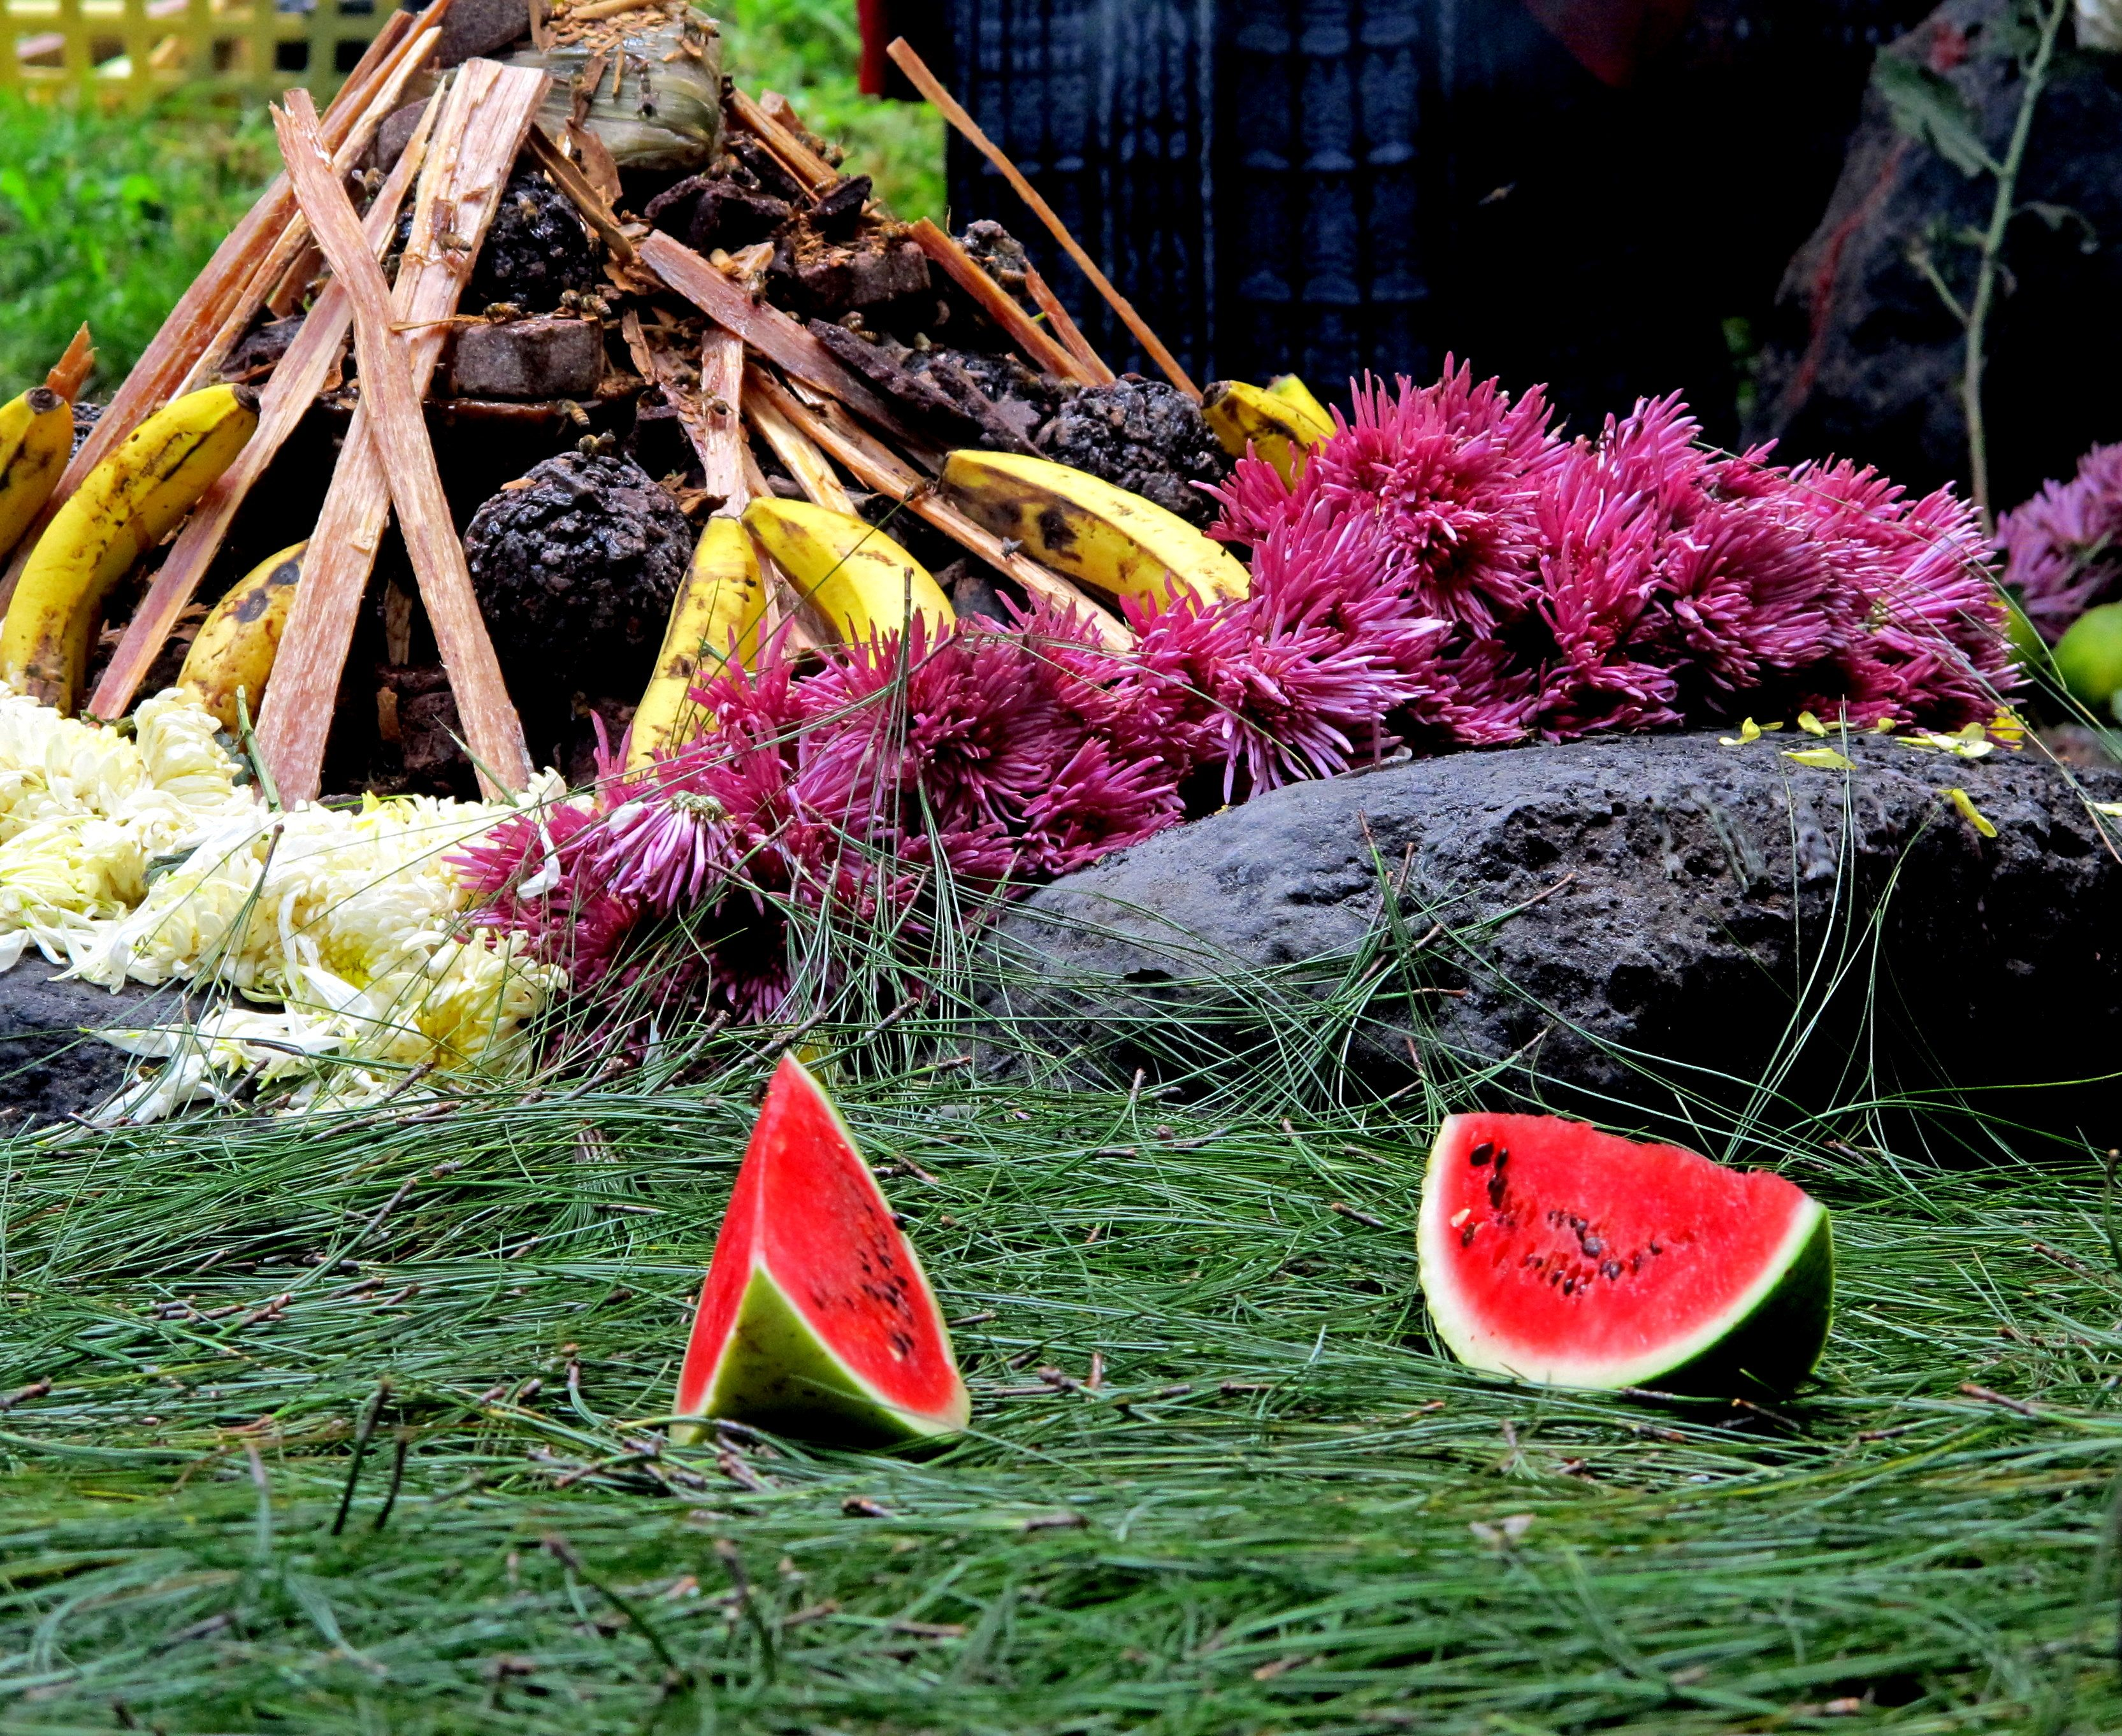 Mayan, summer solstice, ceremony, Maya, Guatemala, fruits, fire, flowers